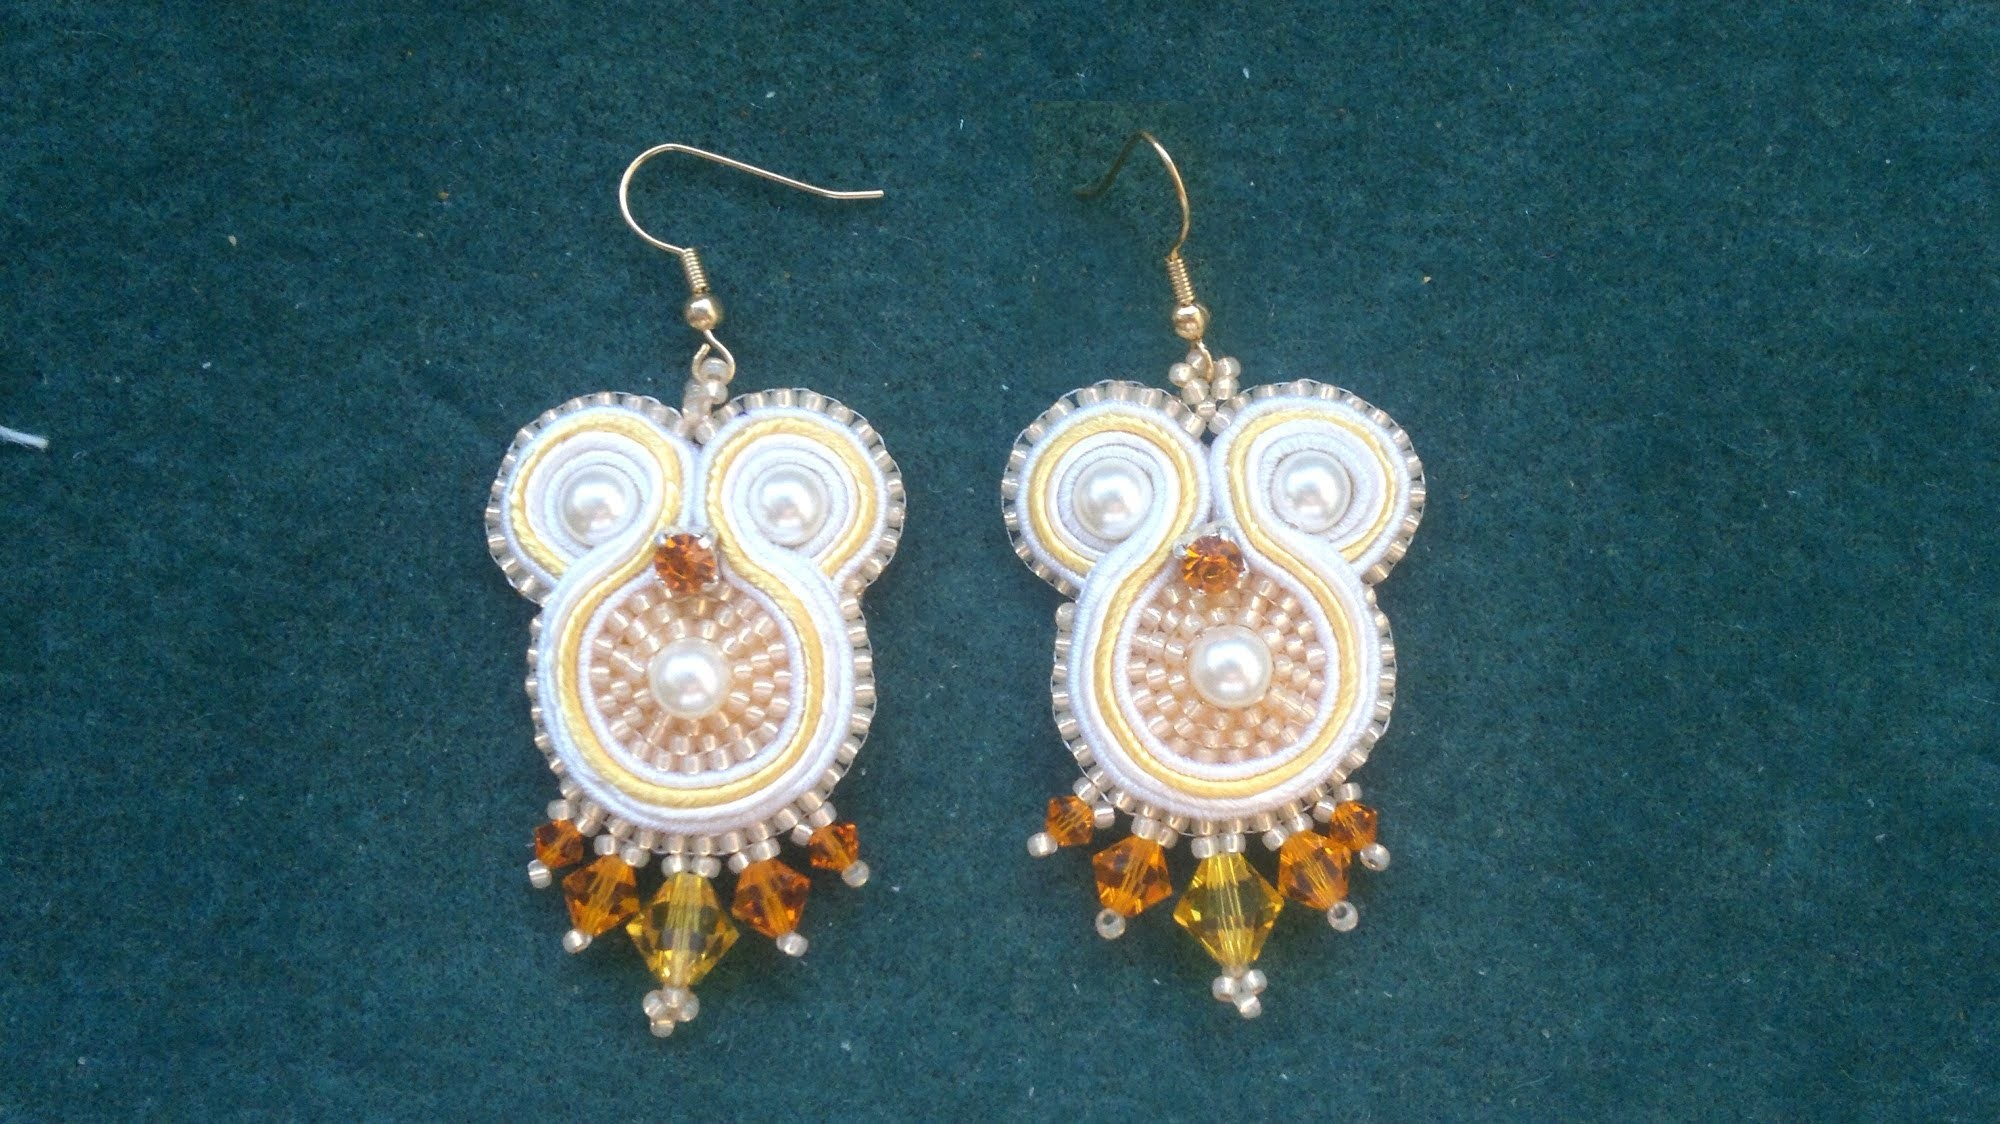 Beading4perfectionists : Soutache #2 : How to add the back and the embellishment tutorial